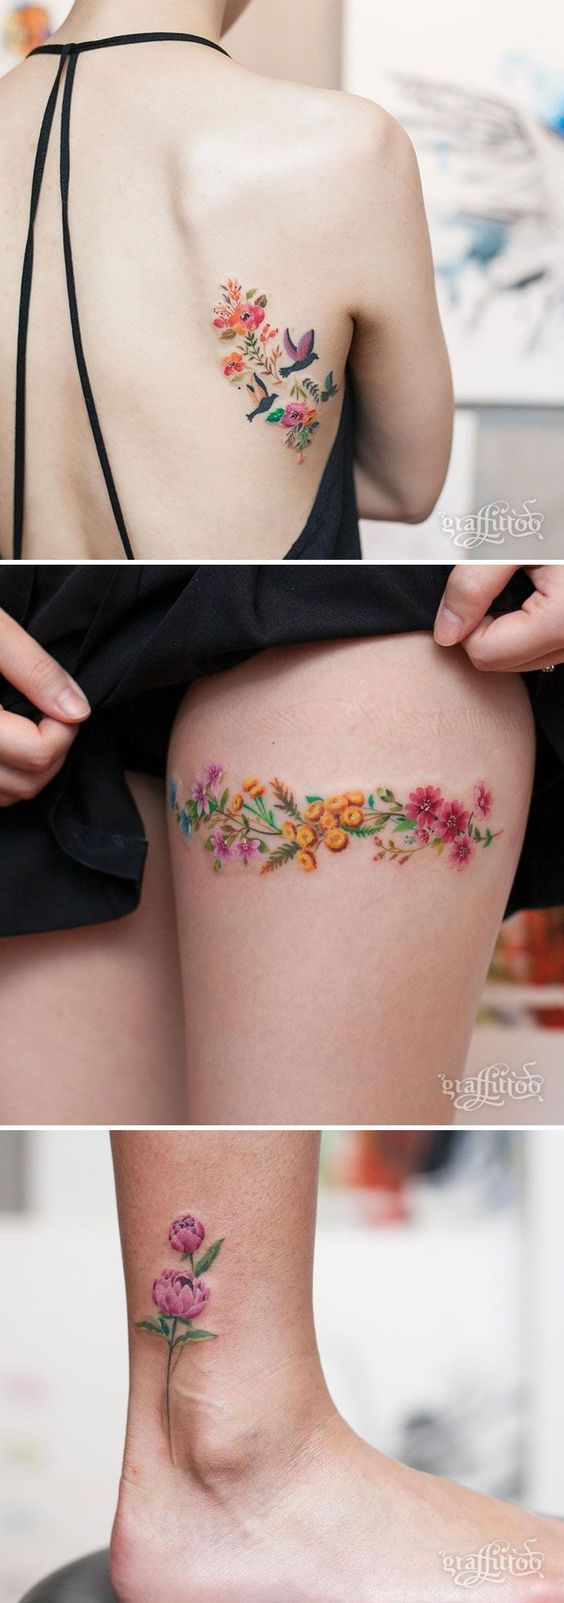 best images about tatuajes on pinterest trends tools and beauty